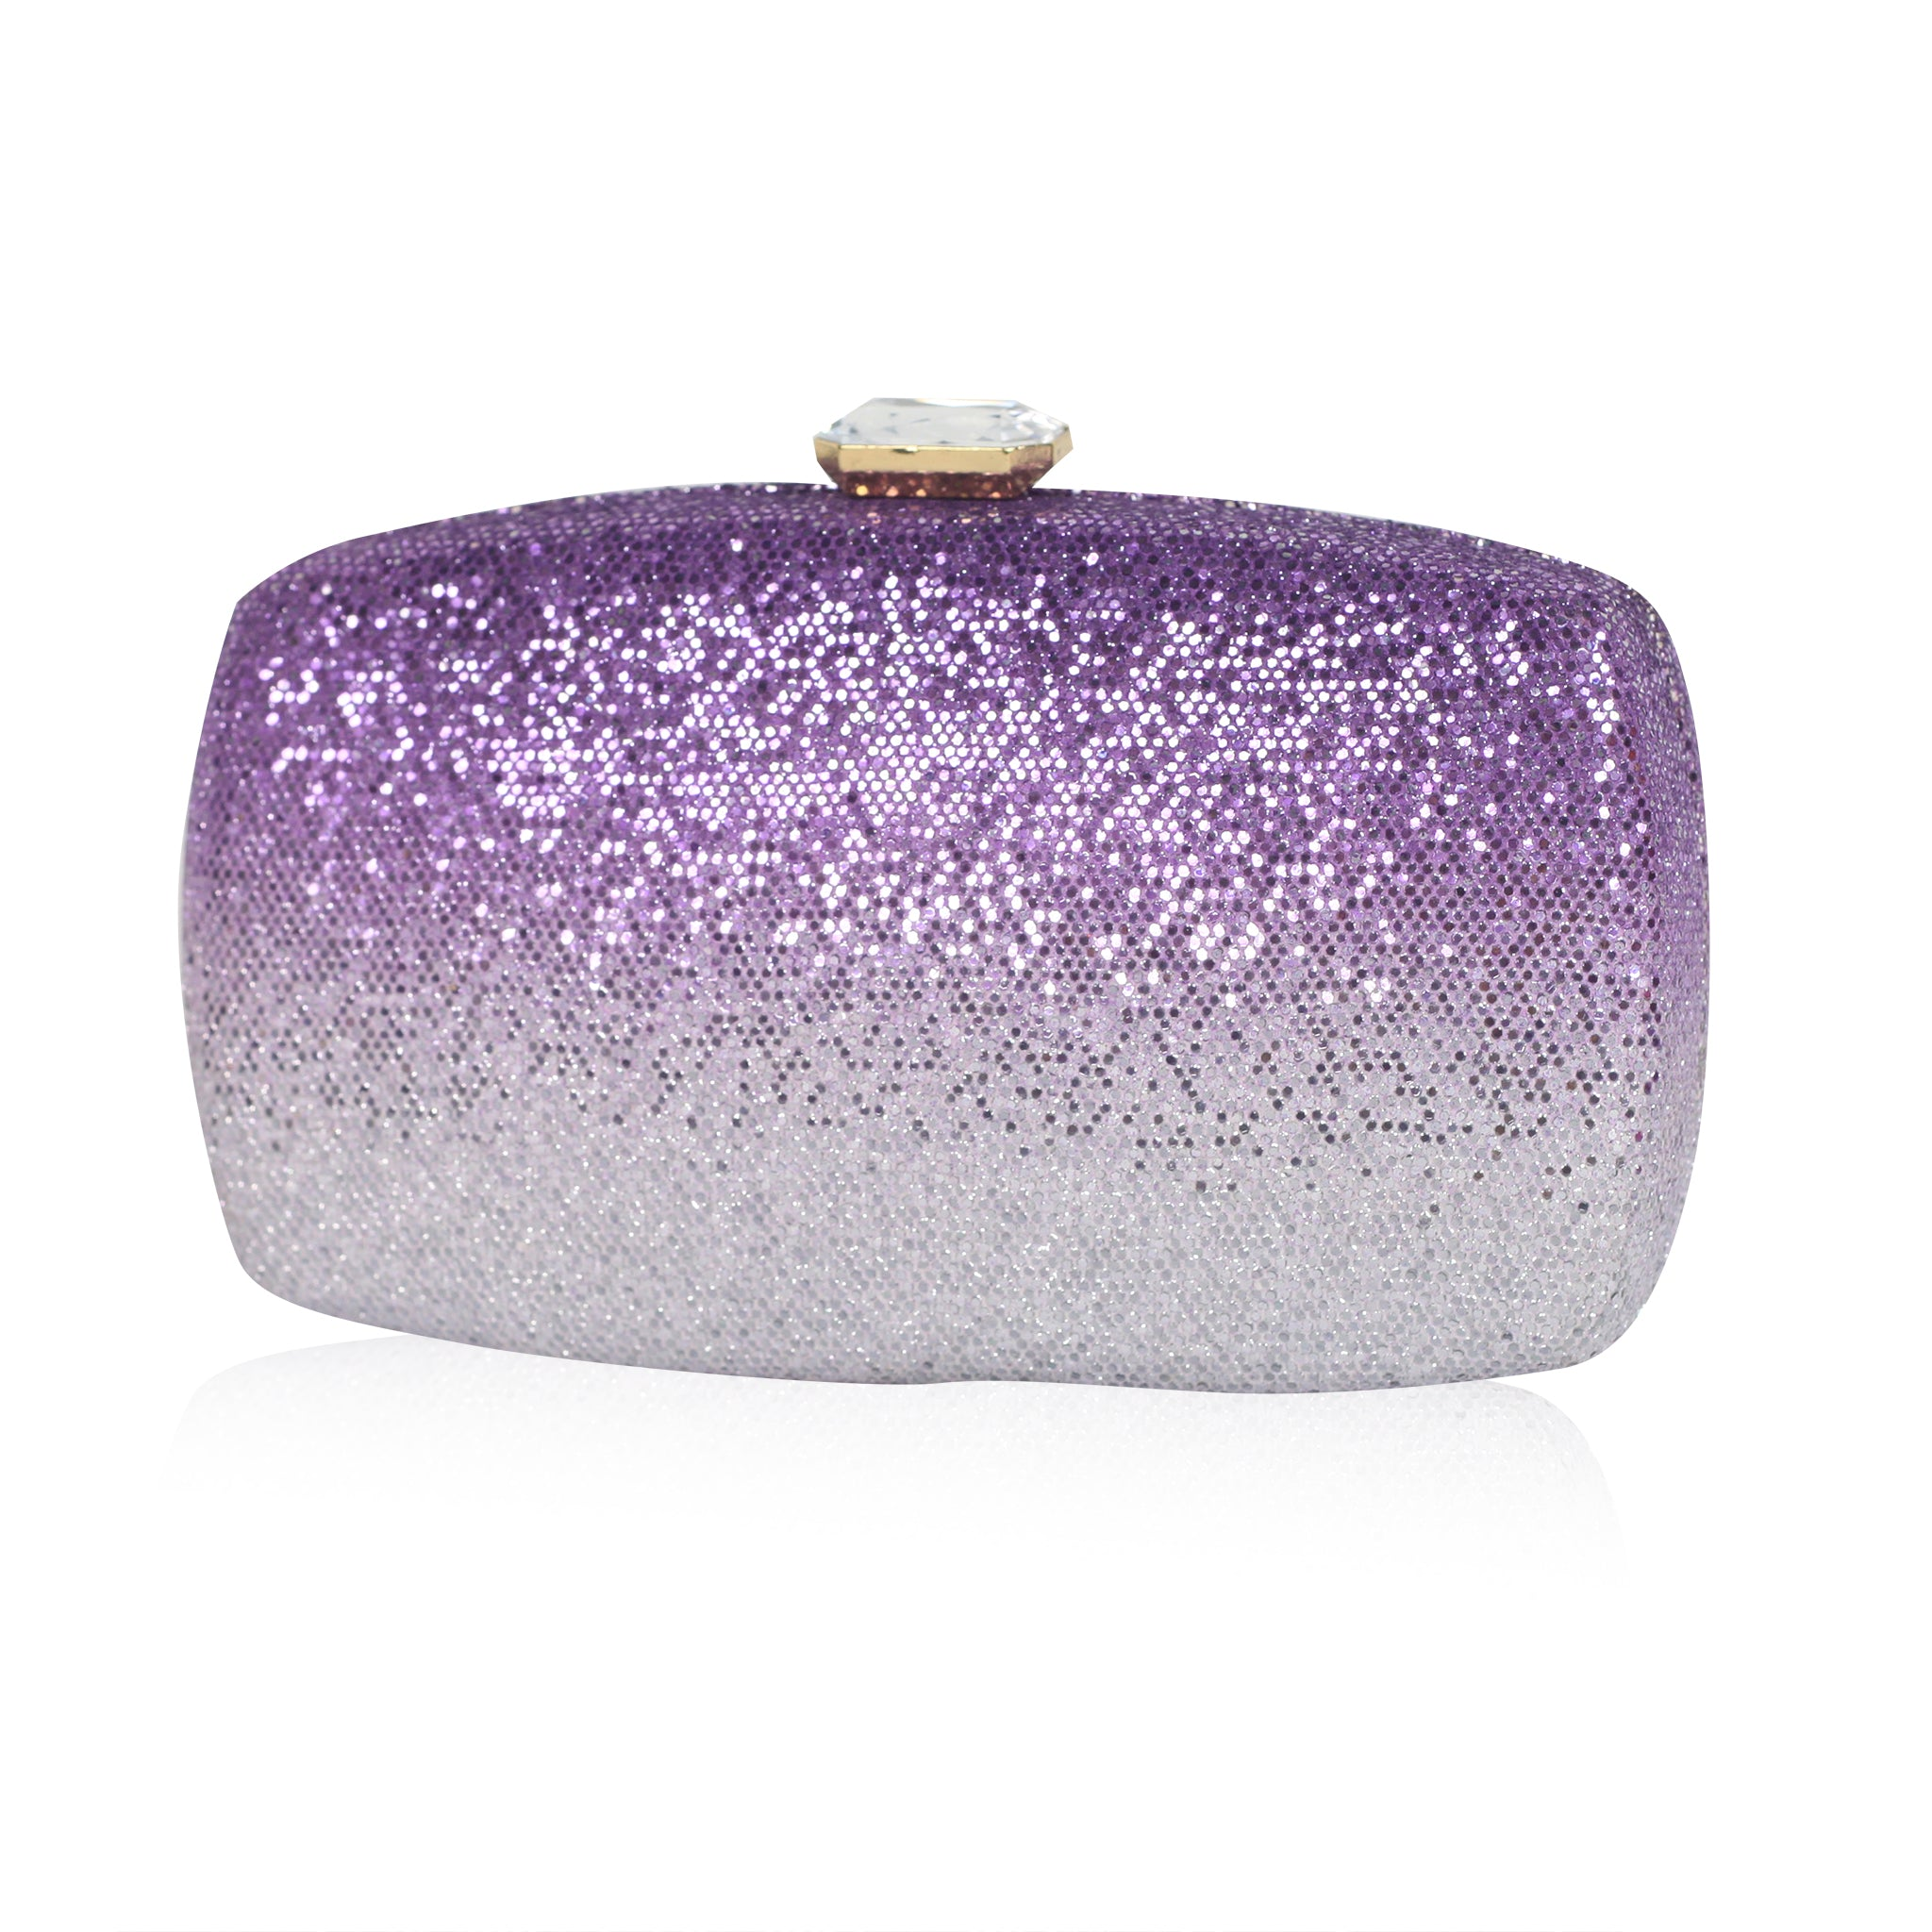 Ombre Clutch - Purple